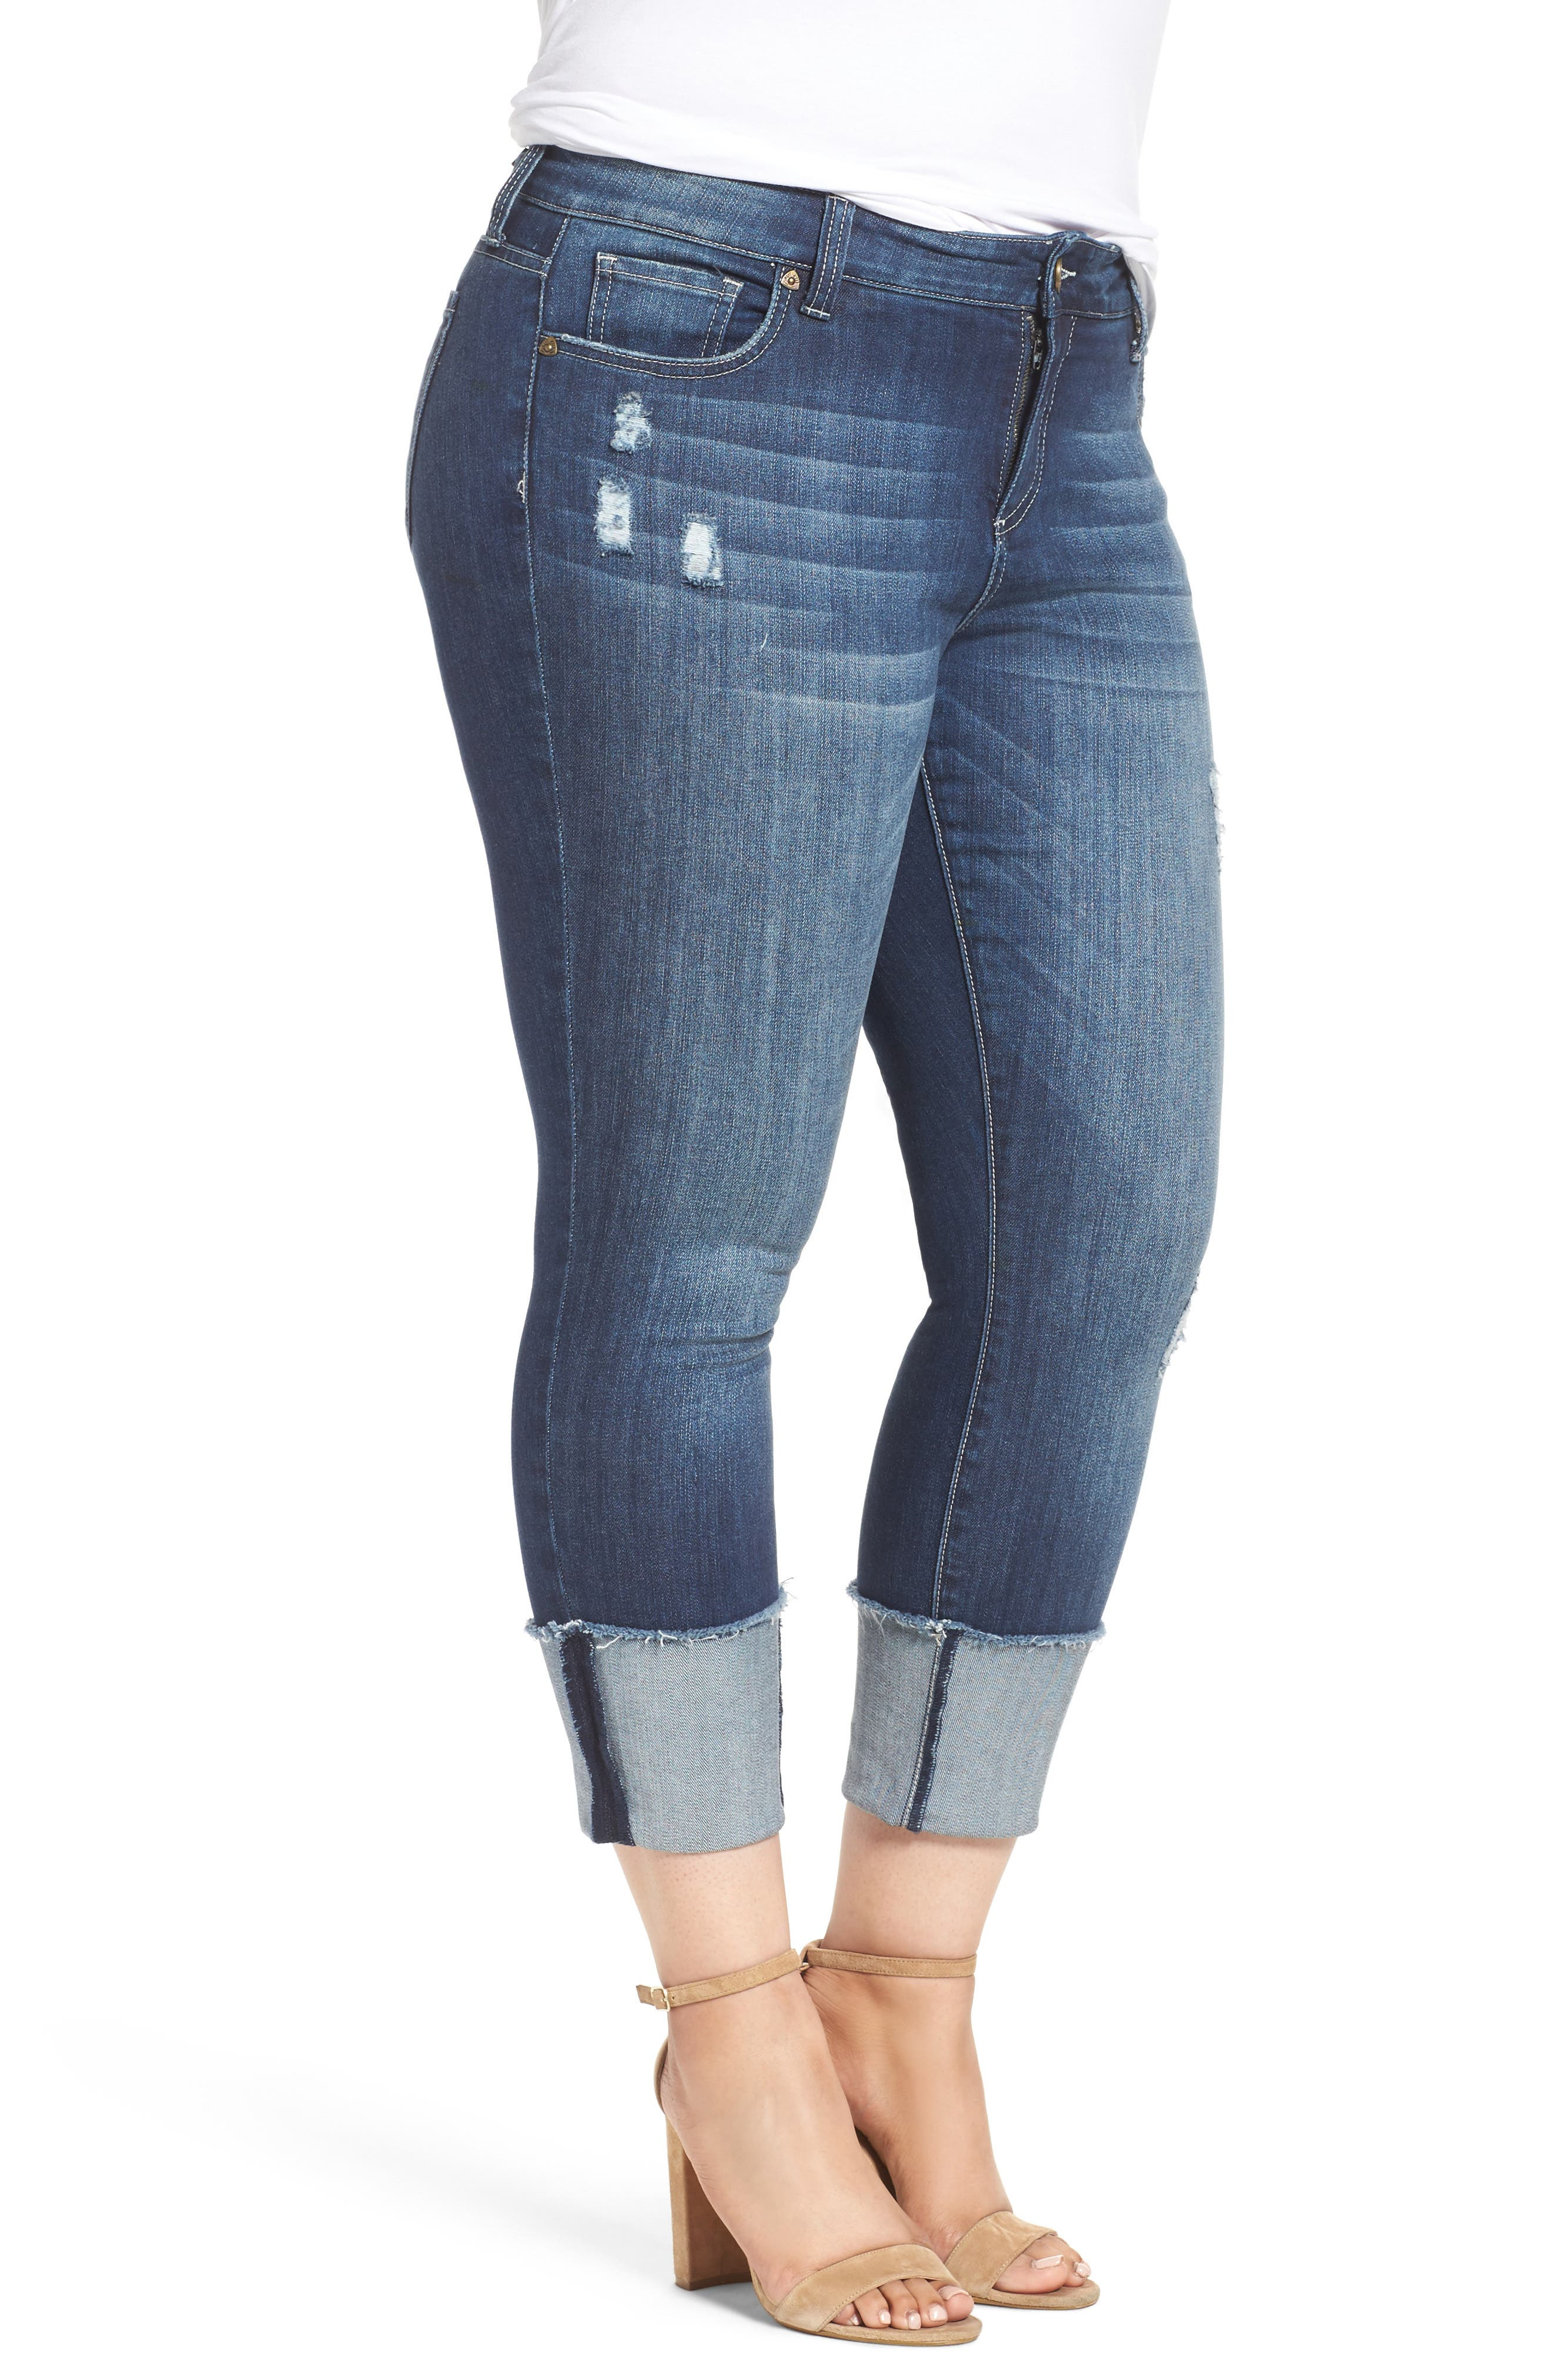 Cameron Cuffed Straight Leg Jeans,                             Alternate thumbnail 3, color,                             400